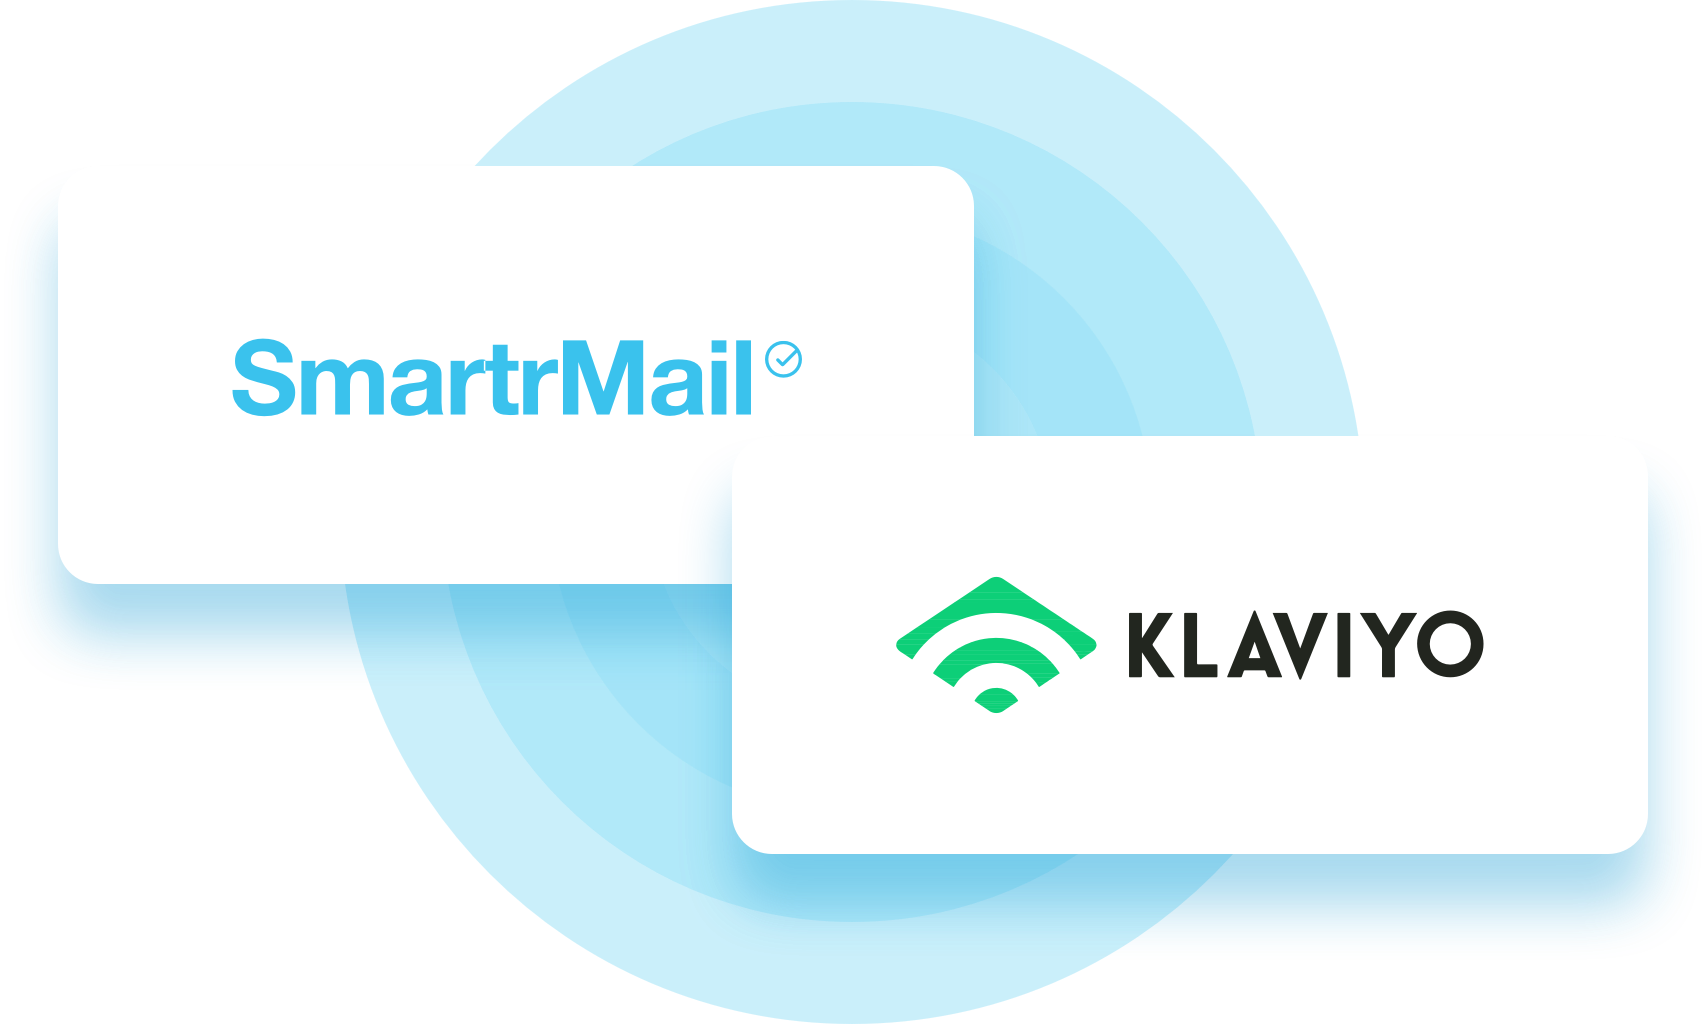 SmartrMail vs Klaviyo